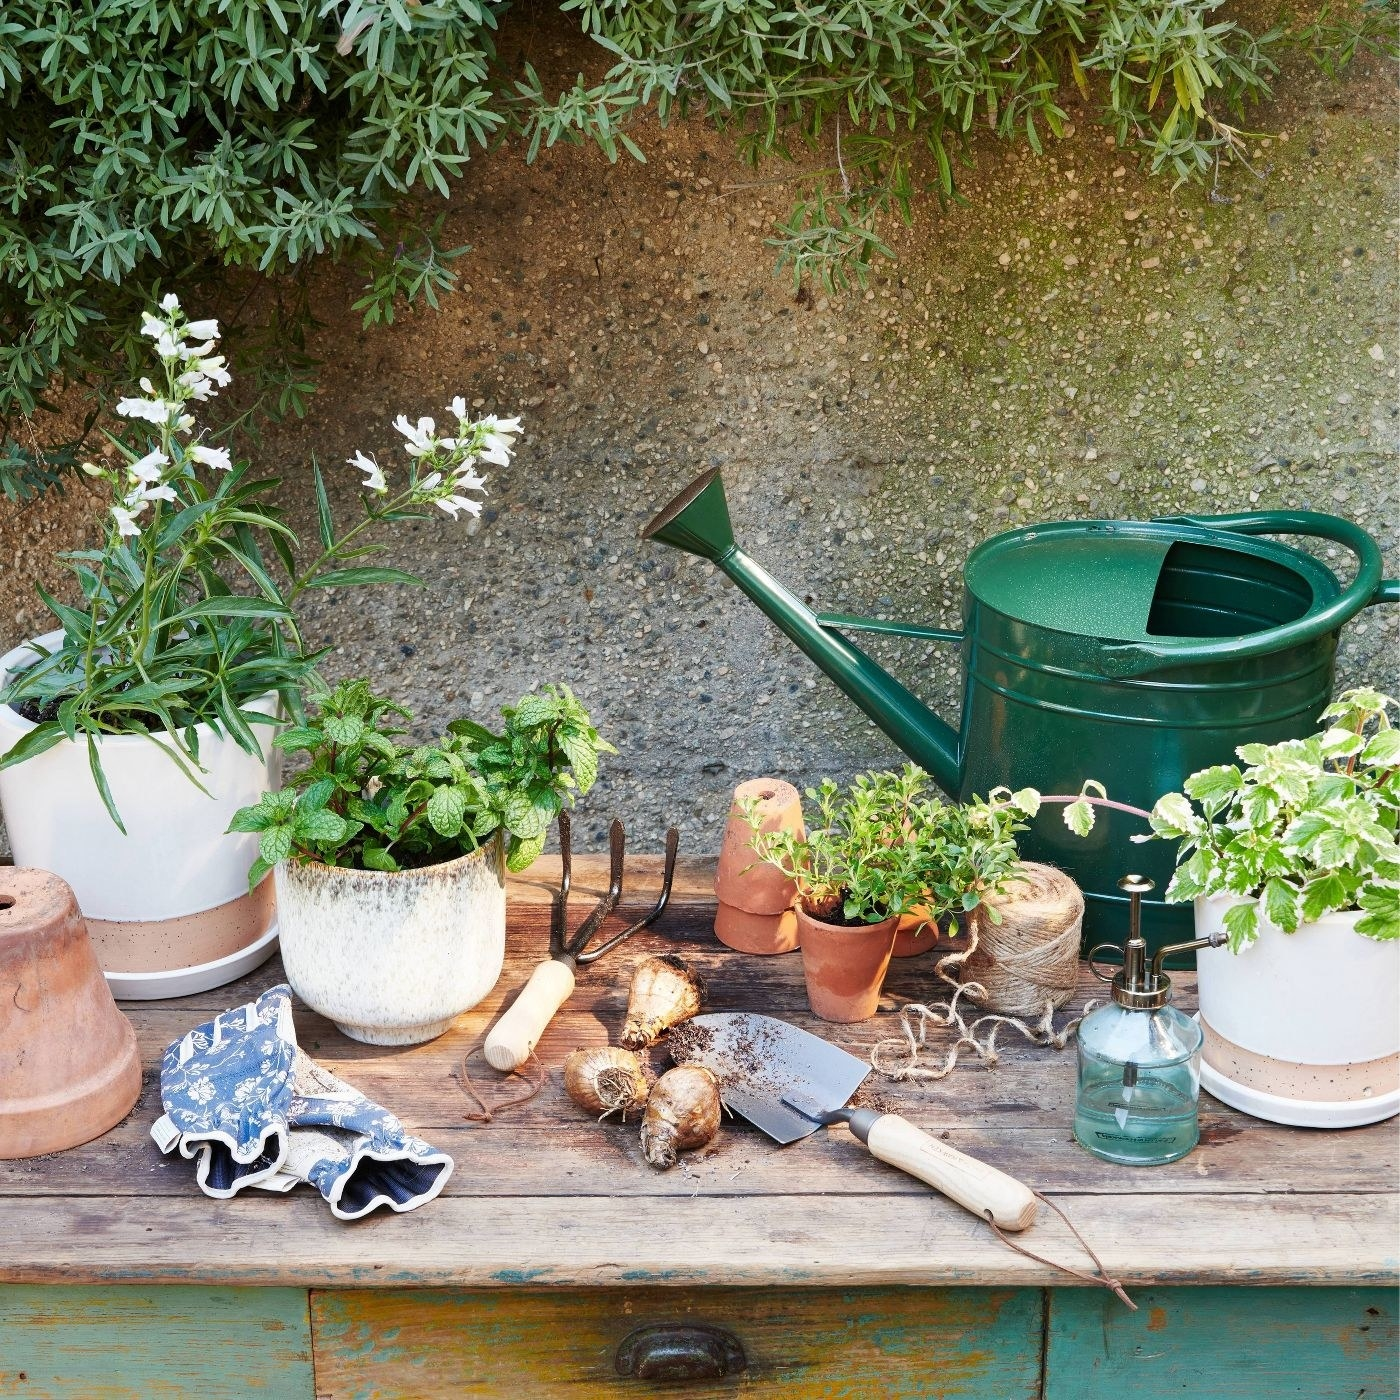 Green watering can on a gardening table